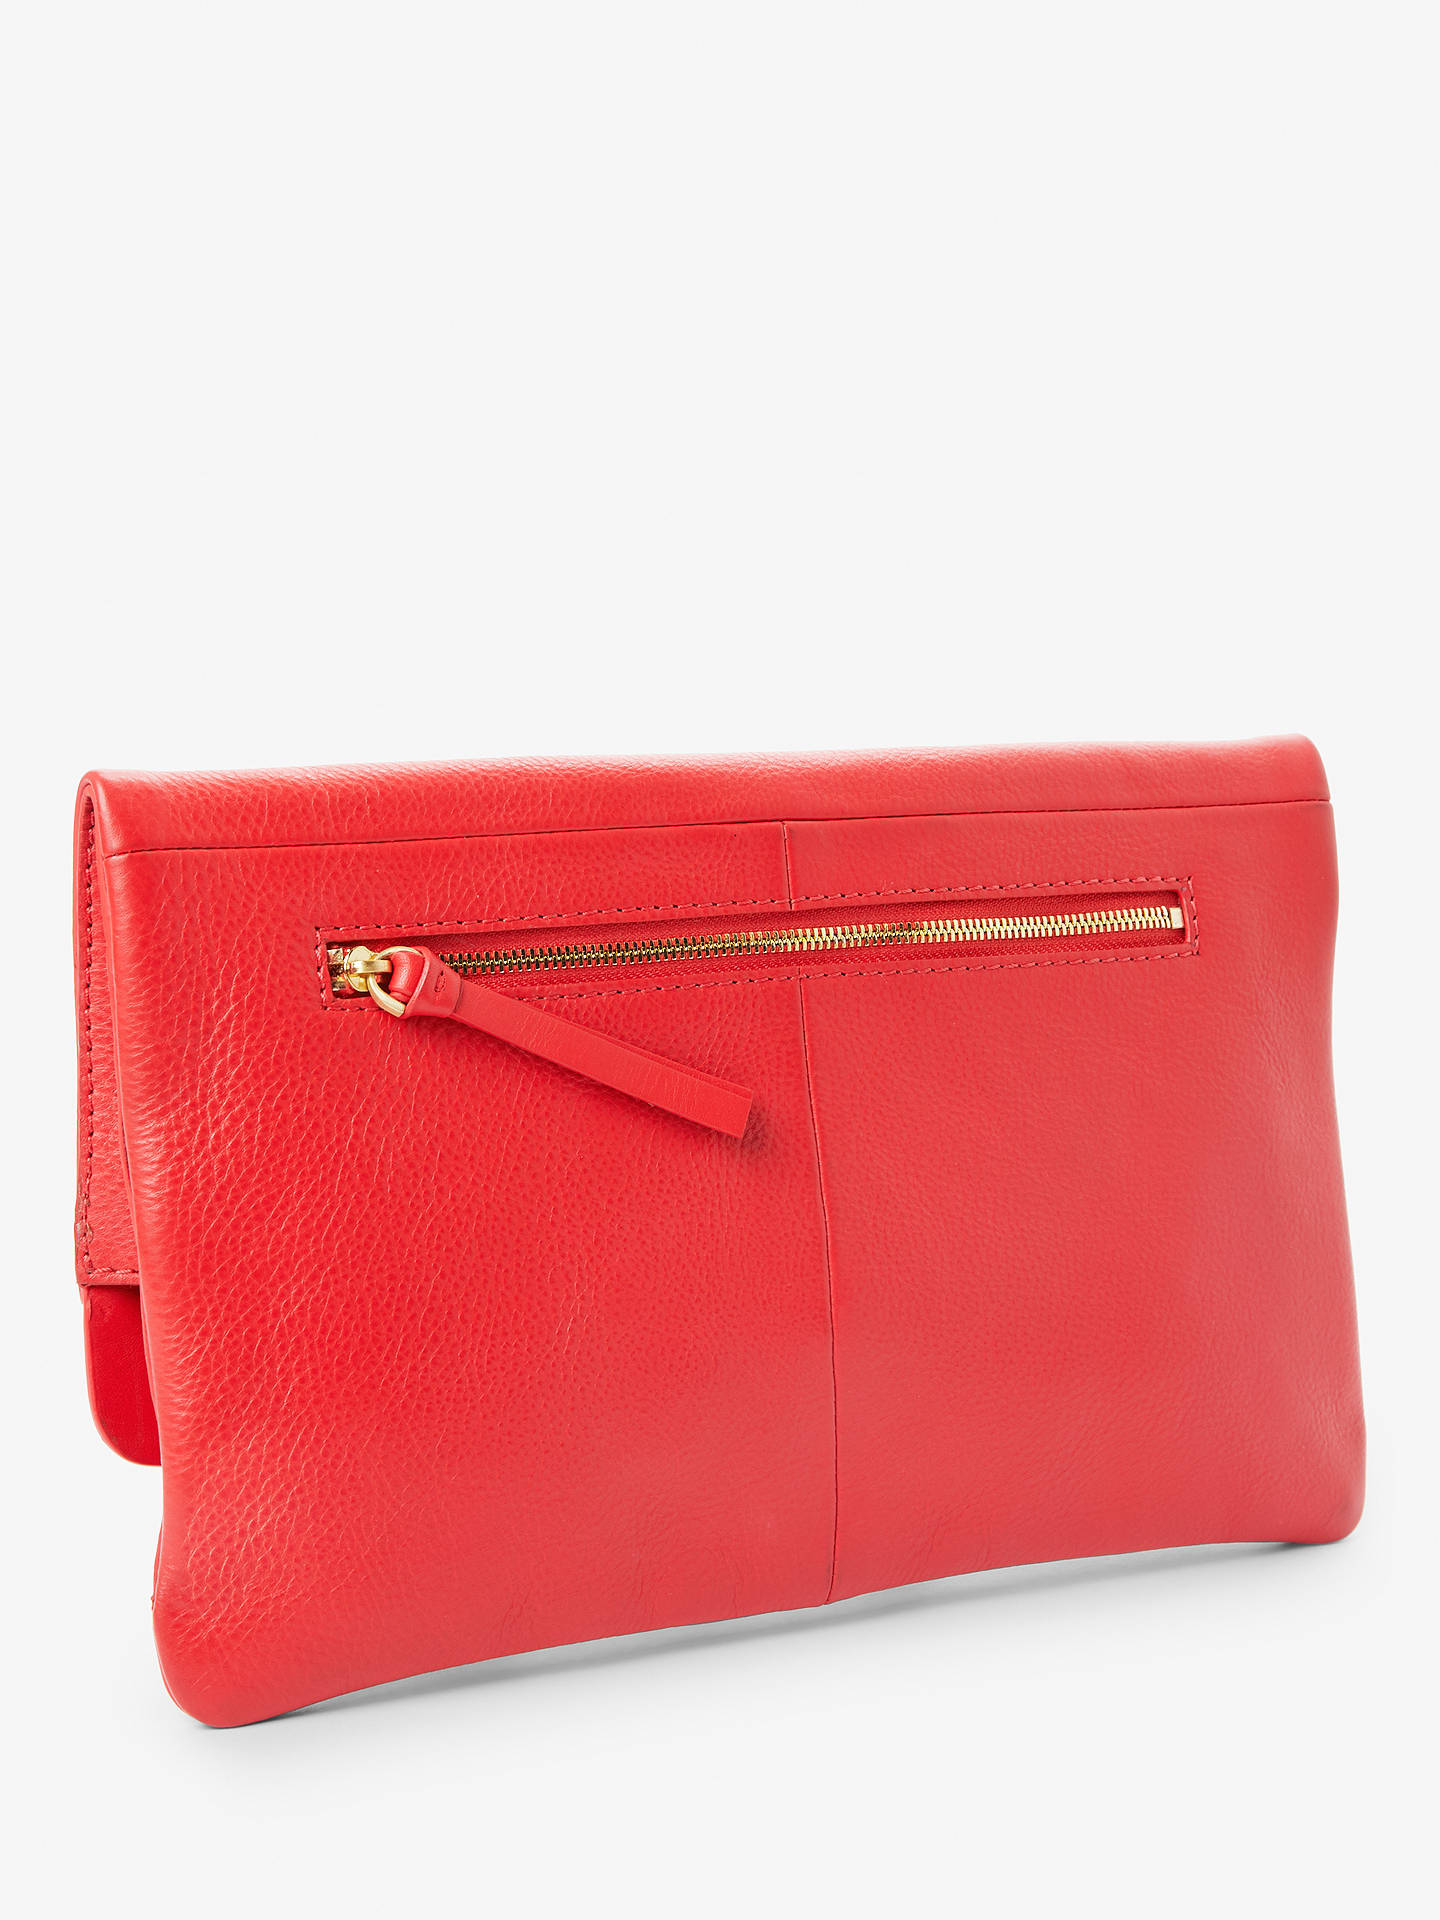 Buy John Lewis & Partners Leather Mistry Clutch Bag, Red Online at johnlewis.com